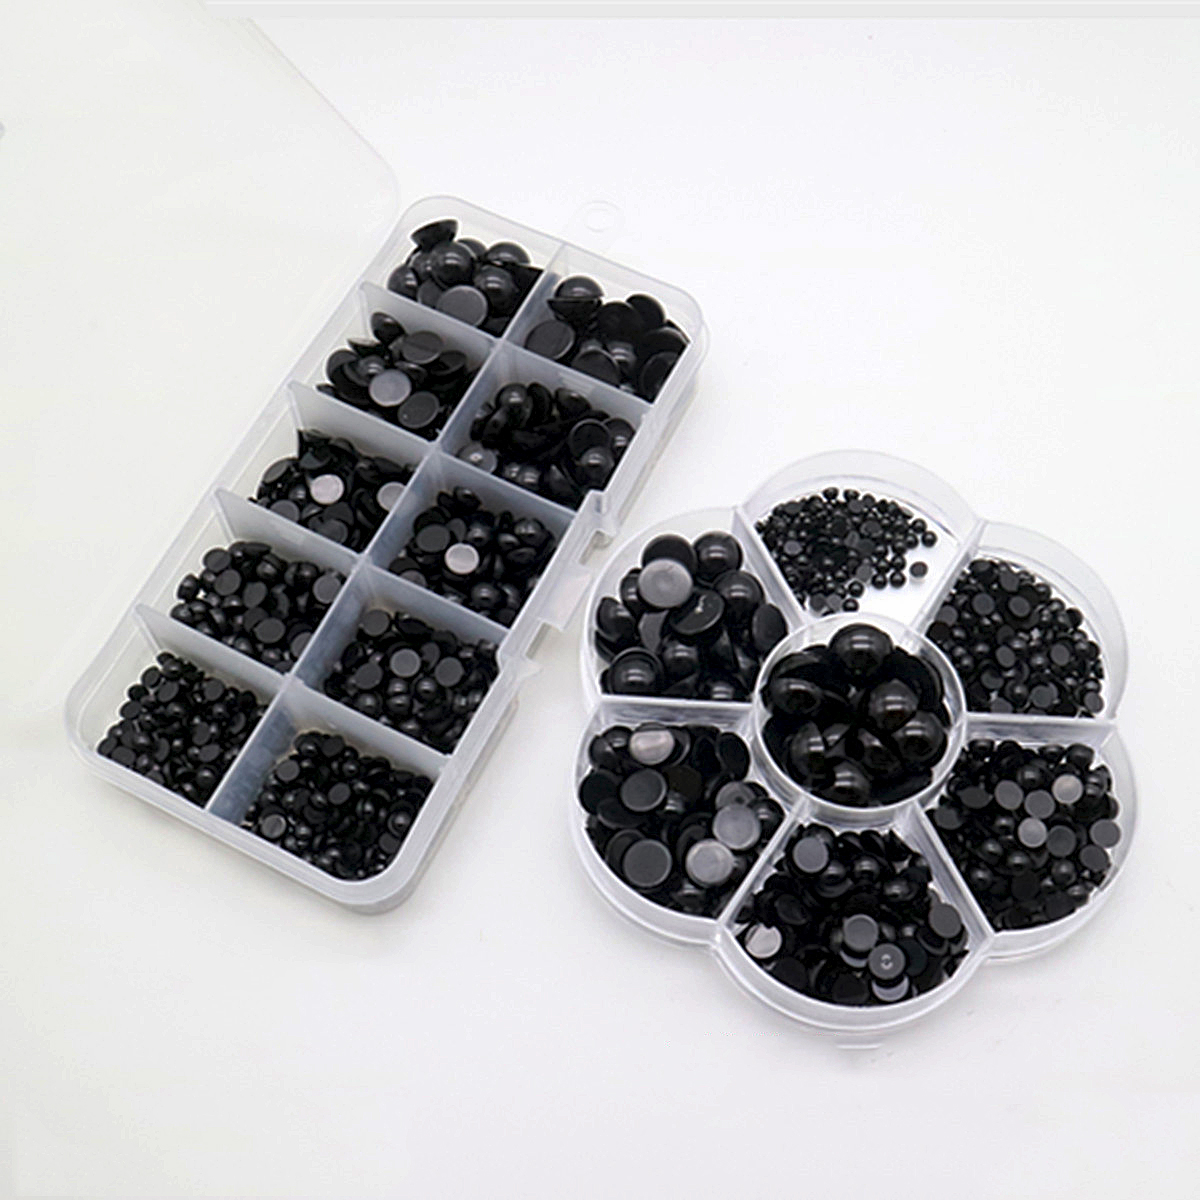 3-12mm 500pcs Round Flat Black Safety Eyes Plastic Eyes For Dolls Making Toys For Teddy Bear Dolls Eyes Amigurumi Doll